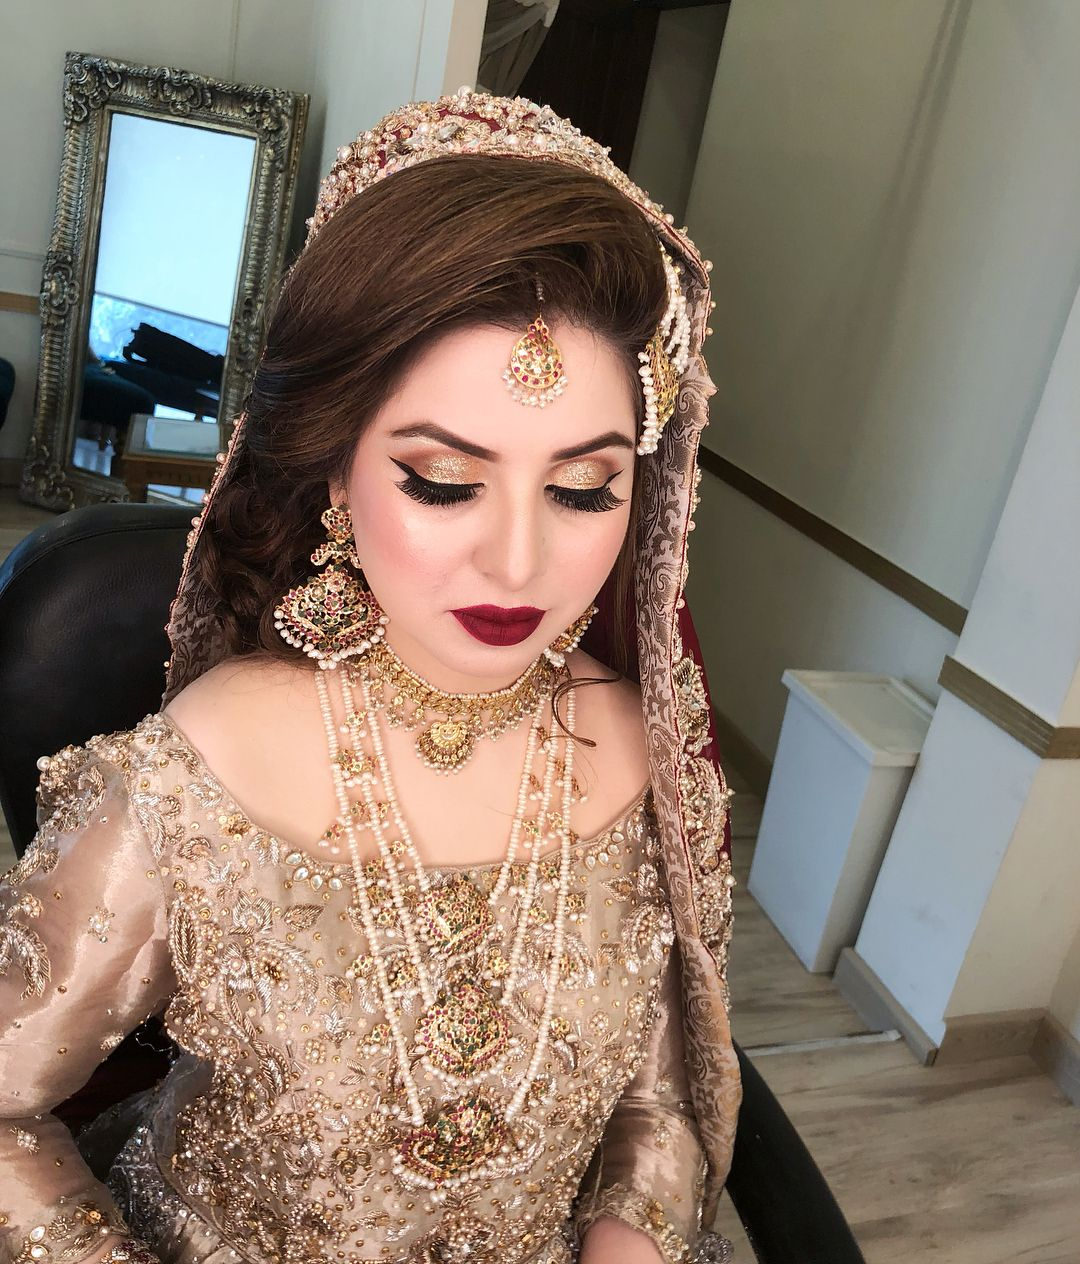 pin by aisha khan on make up looks in 2019 | pakistani